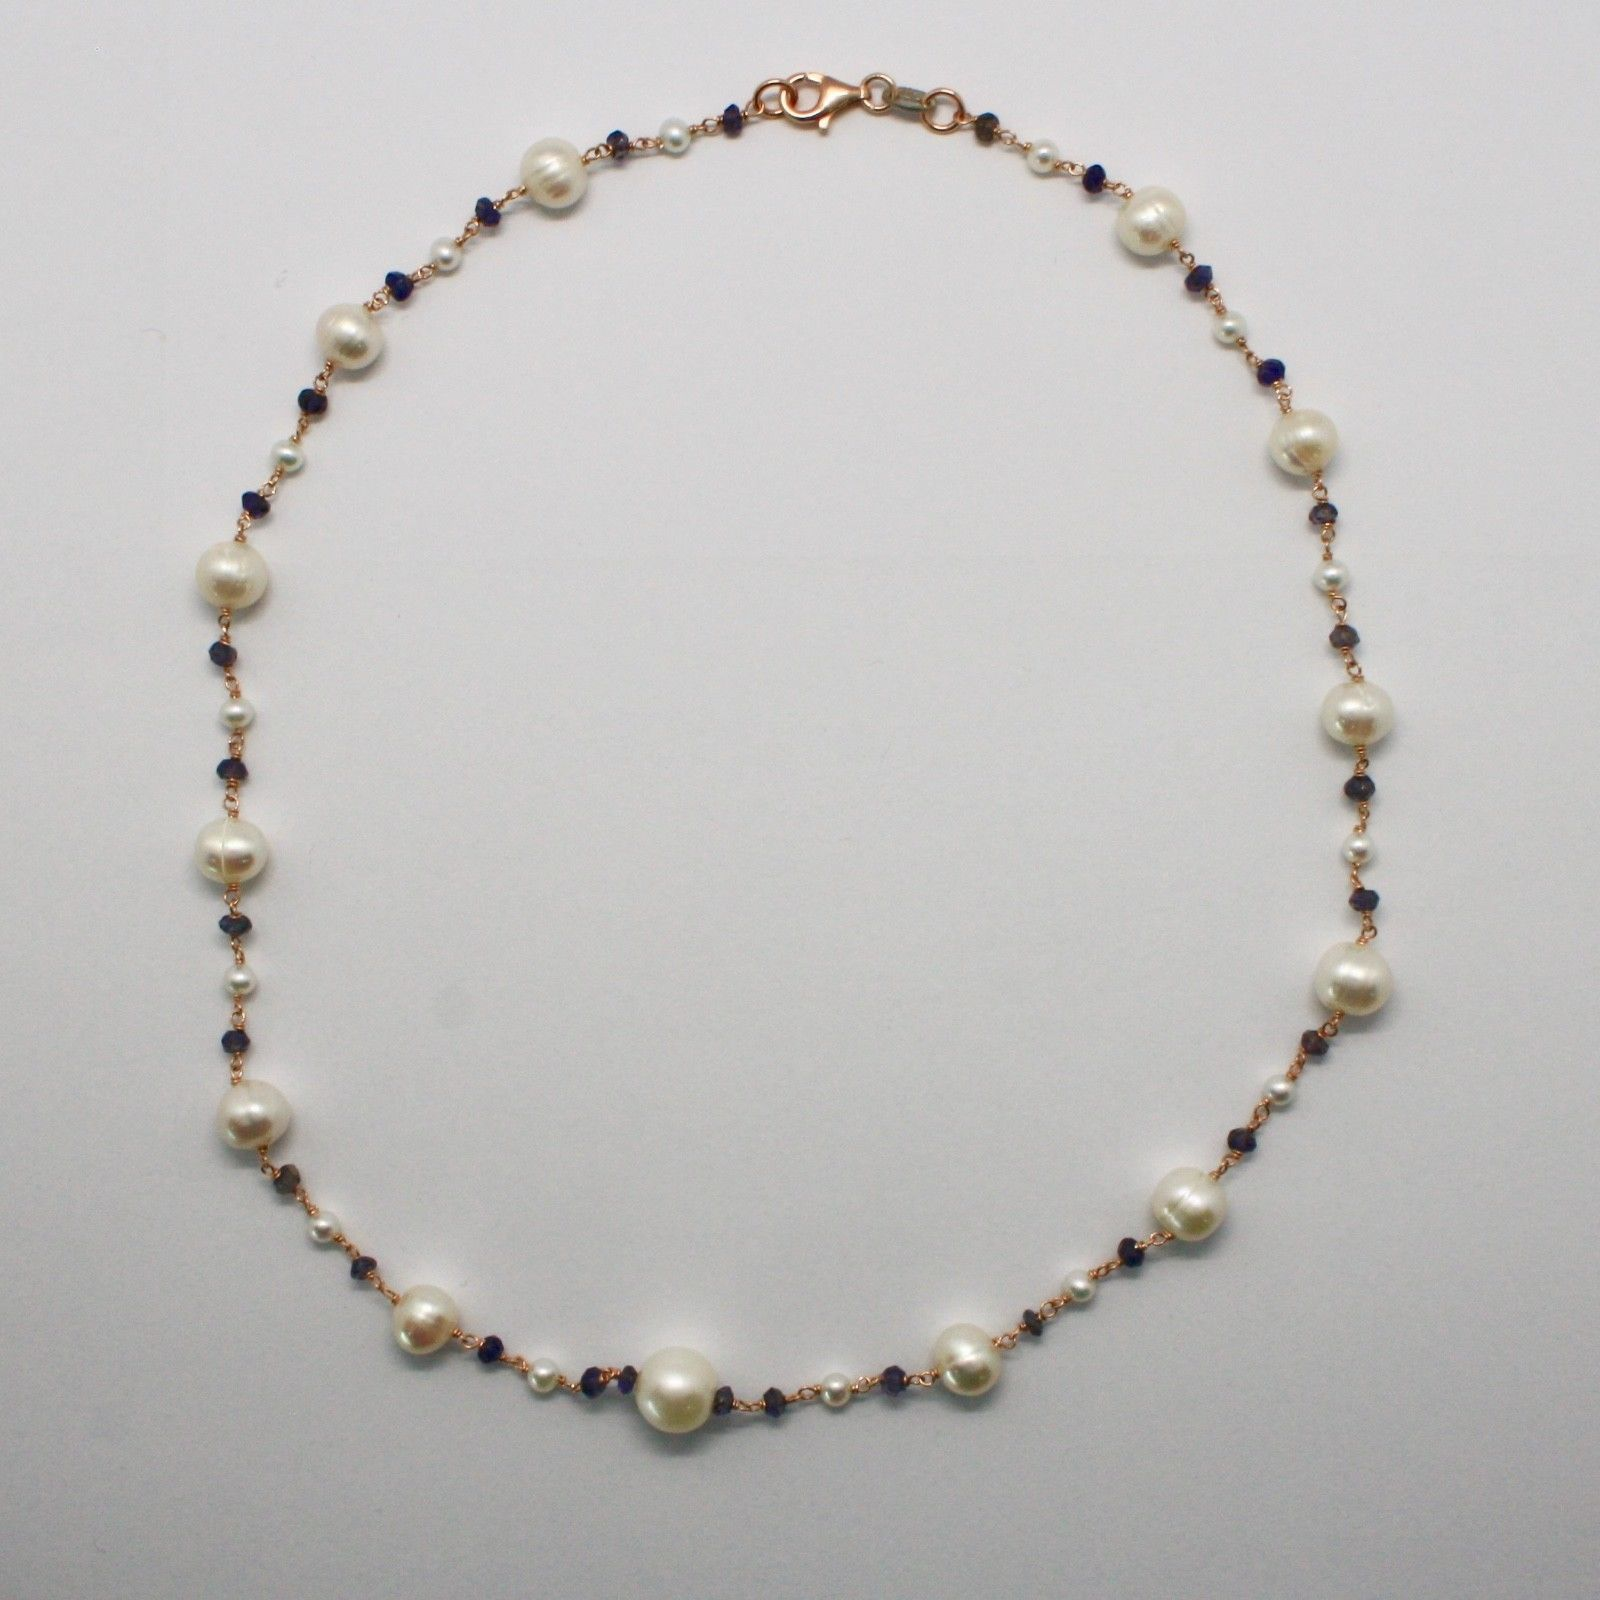 925 STERLING SILVER NECKLACE WITH WHITE PEARLS FW AND IOLITE MADE IN ITALY